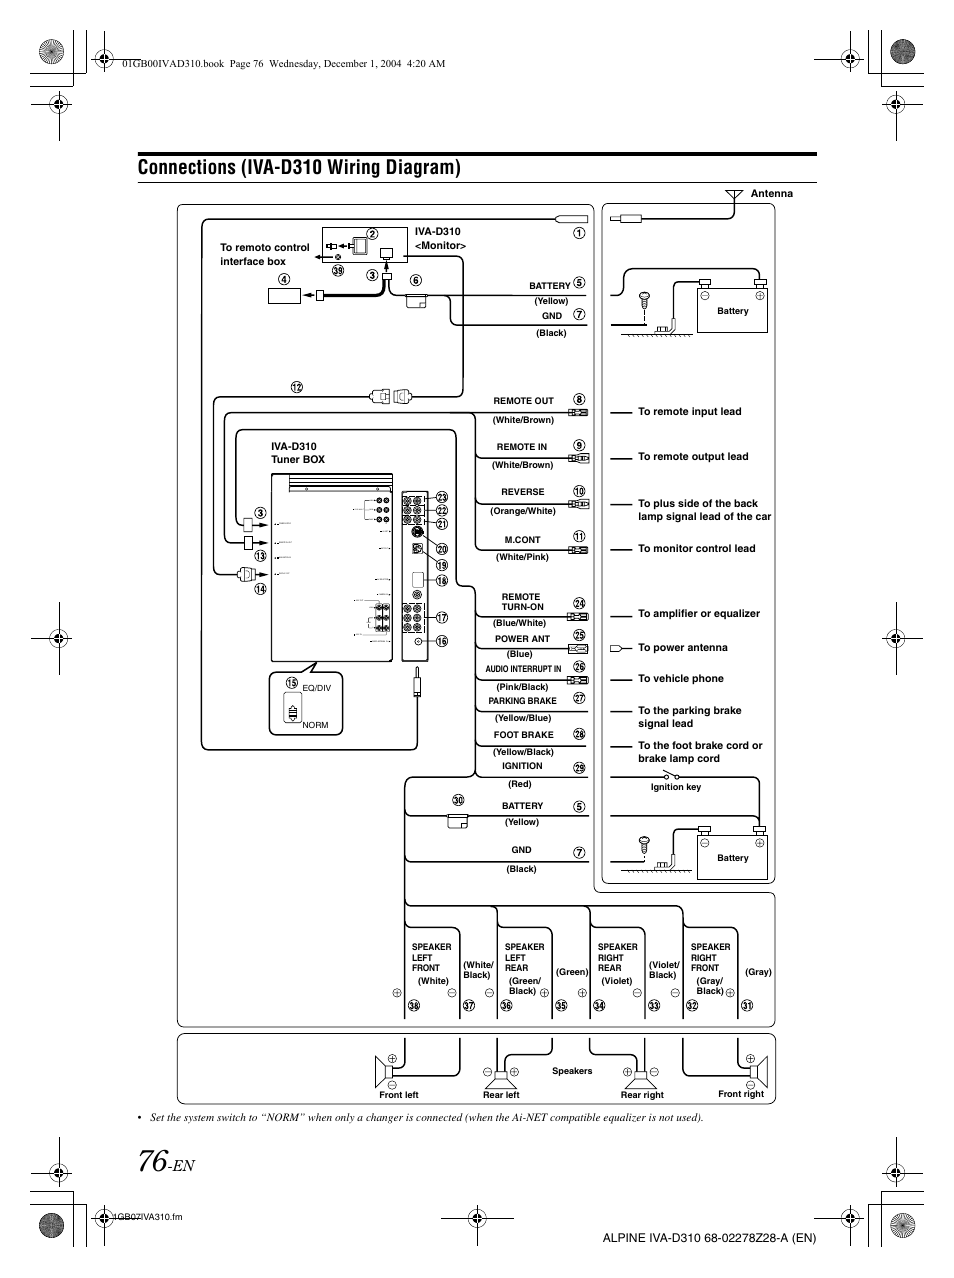 alpine iva d310 page78?resize\\\\=665%2C891 100 [ wiring diagram alpine stereo ] car stereo diagram on car alpine cda 9827 wiring diagram at gsmx.co